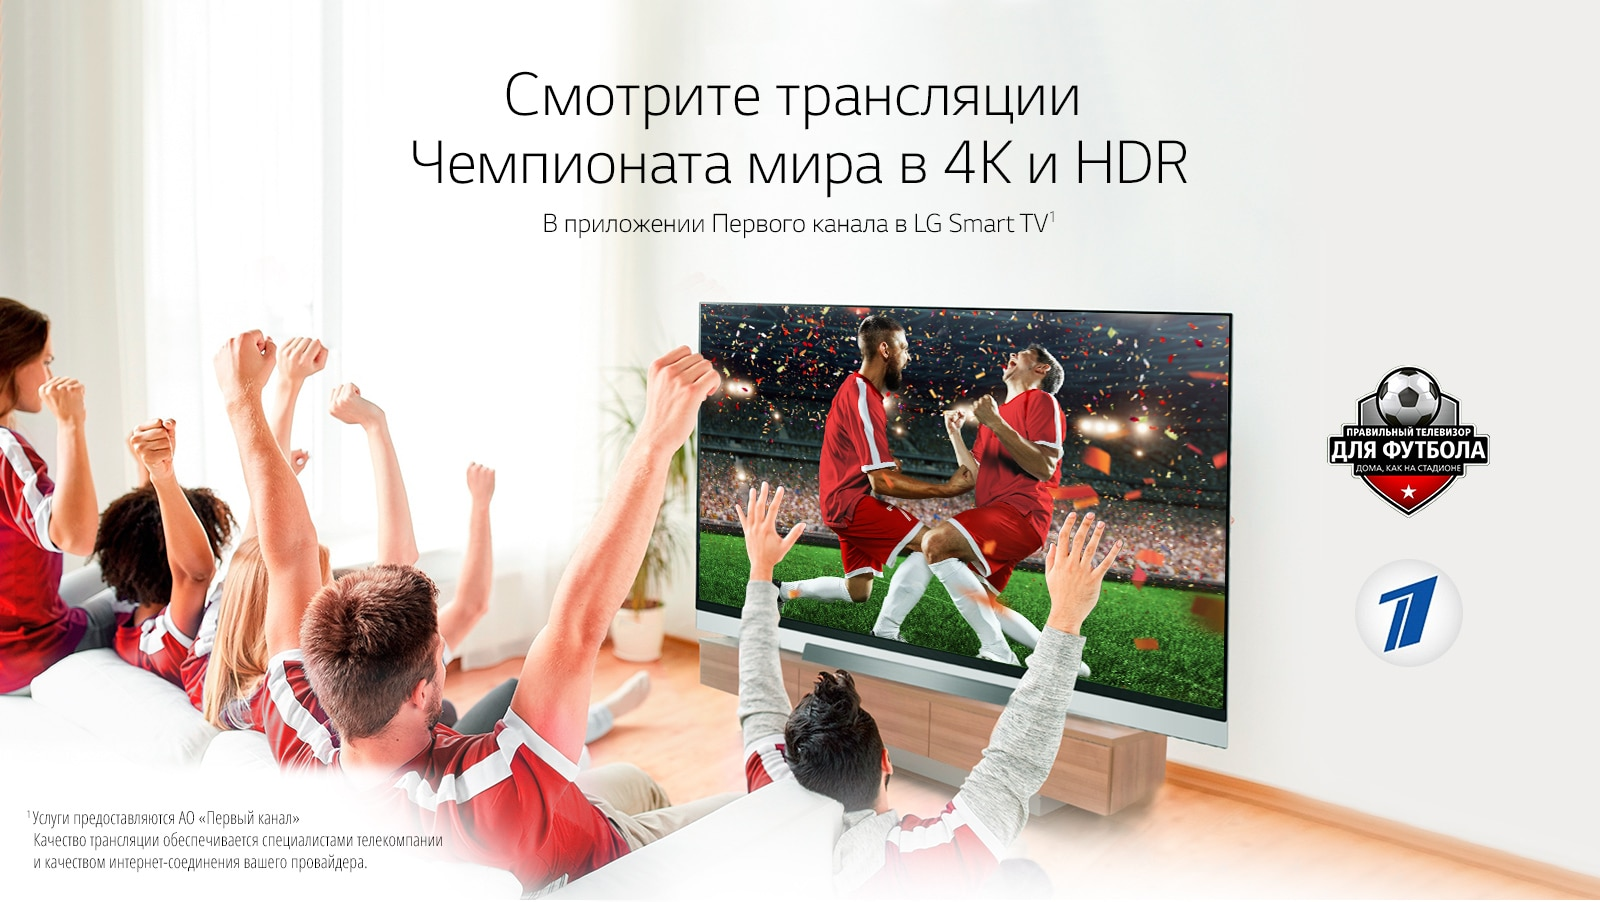 Телевизор LG 55UK6470 4K Ultra HD, IPS панель, Активный HDR, Ultra Surround, webOS Smart TV, TrueMotion, DVB-T2/C/S2 - фото СмоÑÑиÑе ÑÑанÑлÑÑии ЧемпионаÑа миÑа в 4Ри HDR